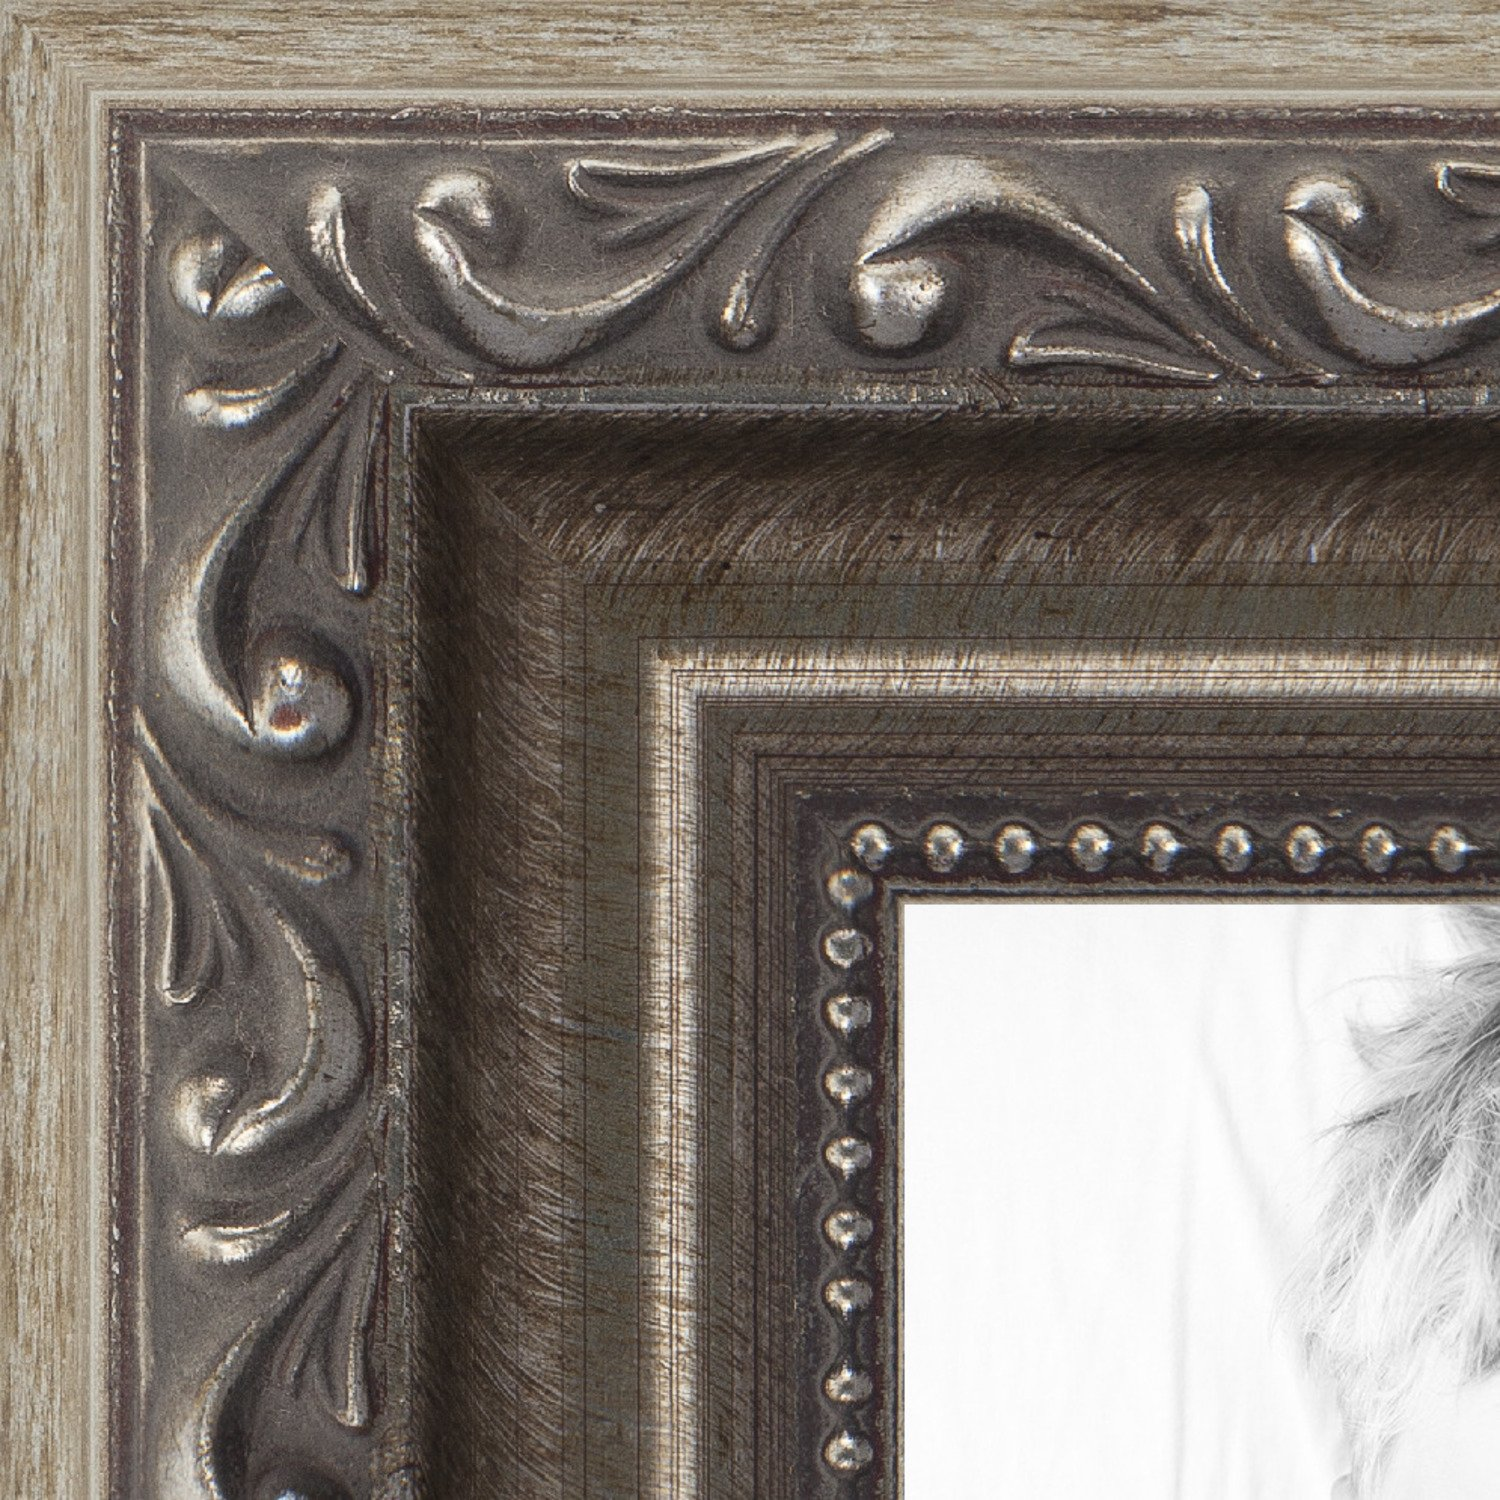 ArtToFrames 16x20 inch Antique Silver with Beads Wood Picture Frame, WOMD6661-16x20 by ArtToFrames